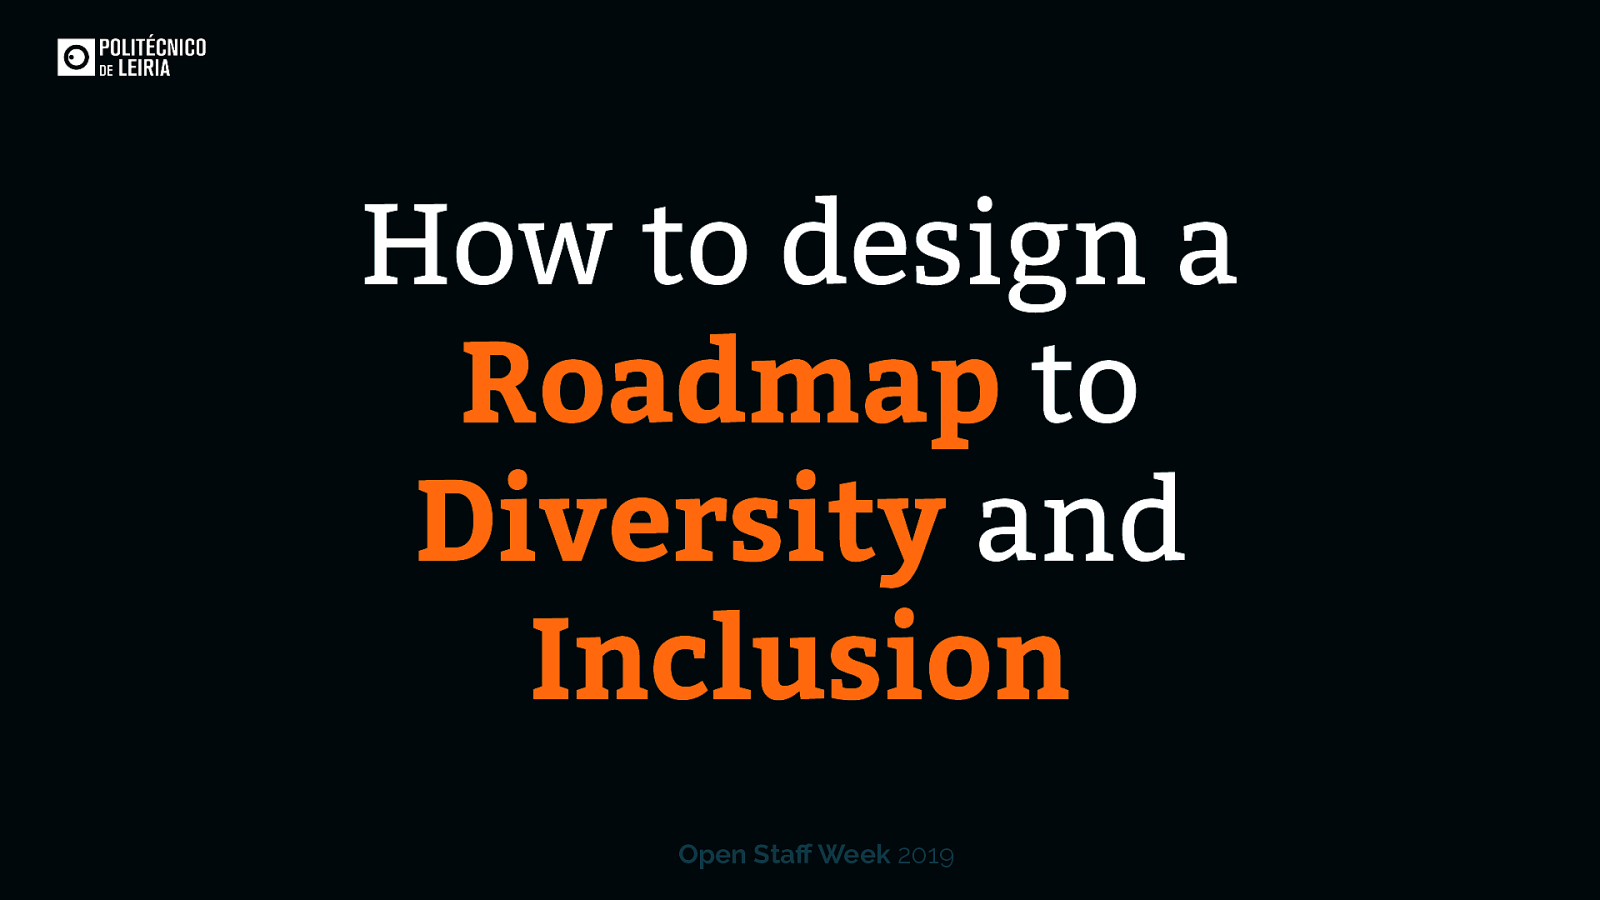 How to design a Roadmap to Diversity and Inclusion